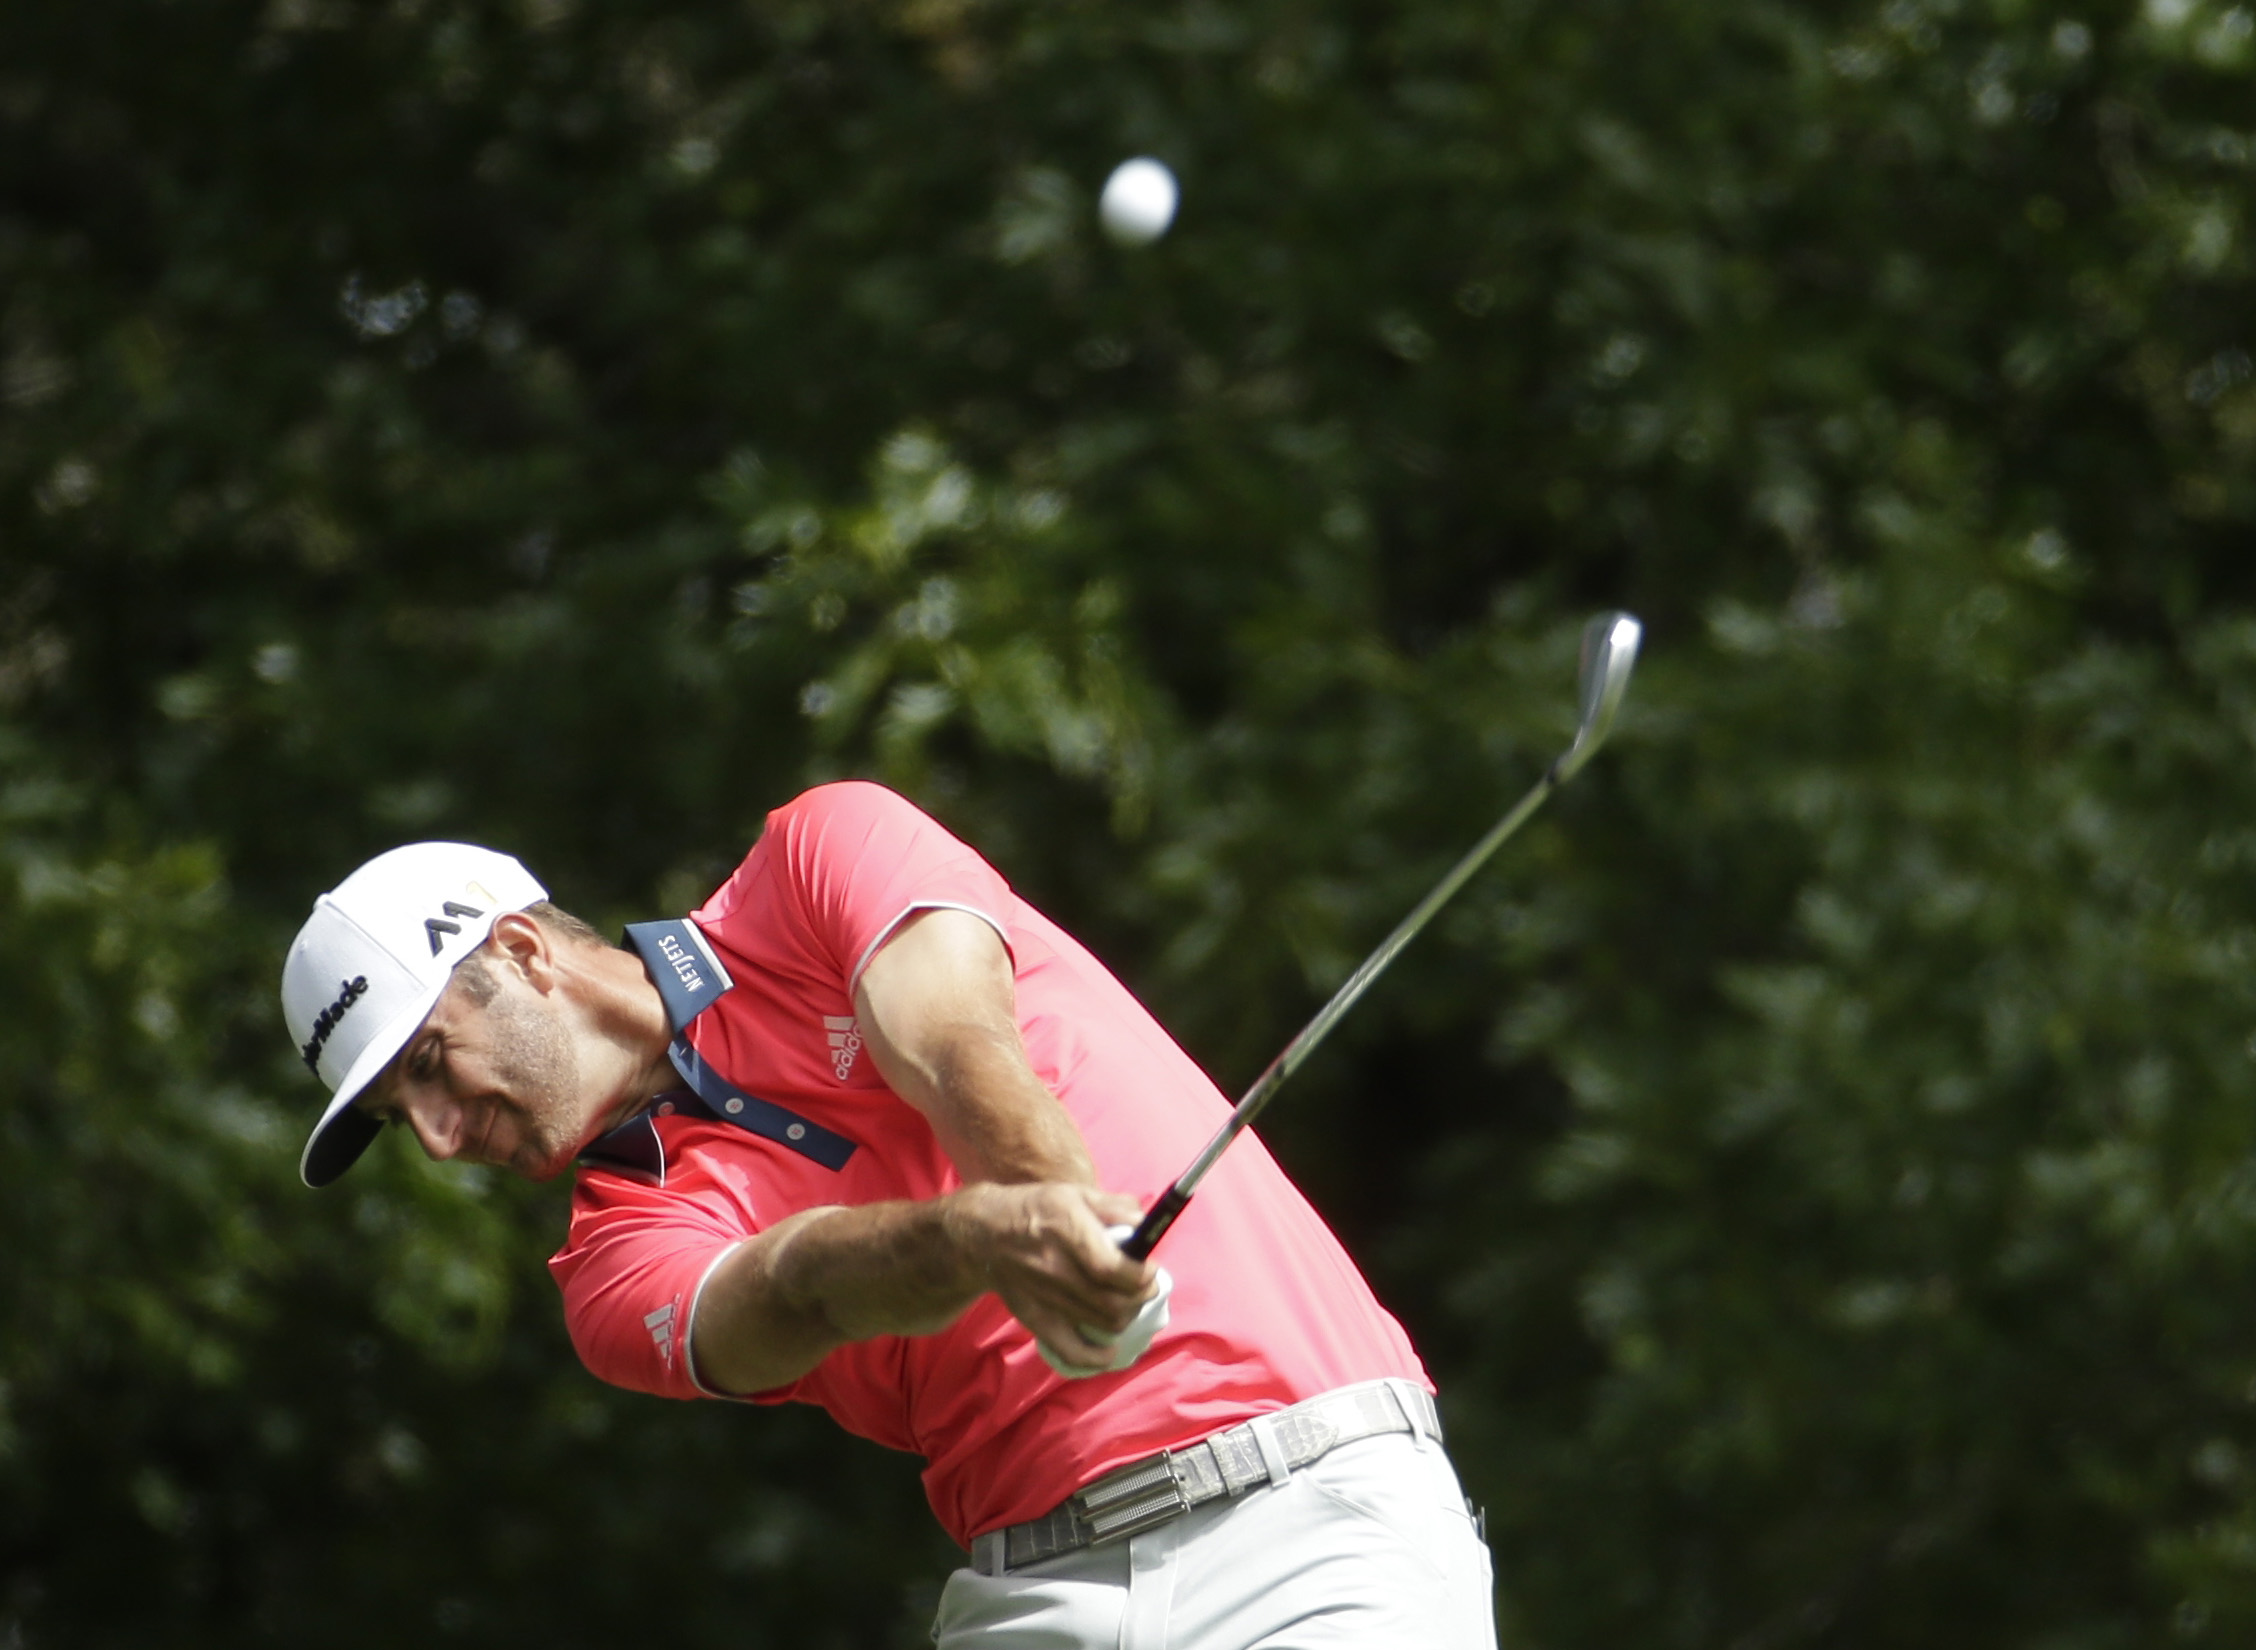 Dustin Johnson tees off on the fourth hole during the final round of the Masters golf tournament Sunday, April 10, 2016, in Augusta, Ga. (AP Photo/Charlie Riedel)